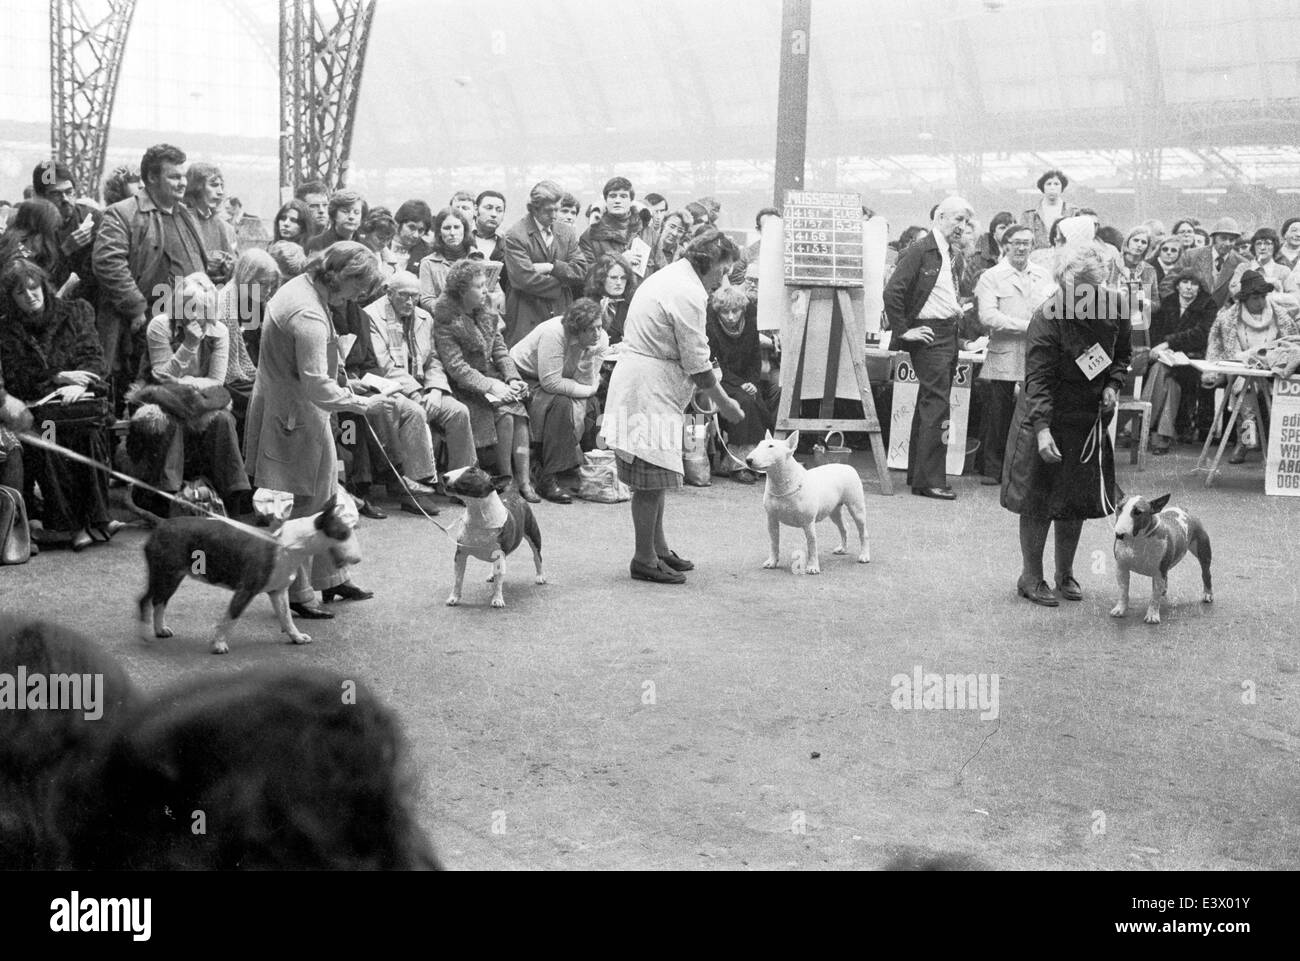 English Bull Terriers at the 1977 Olympia Crufts dog show. - Stock Image